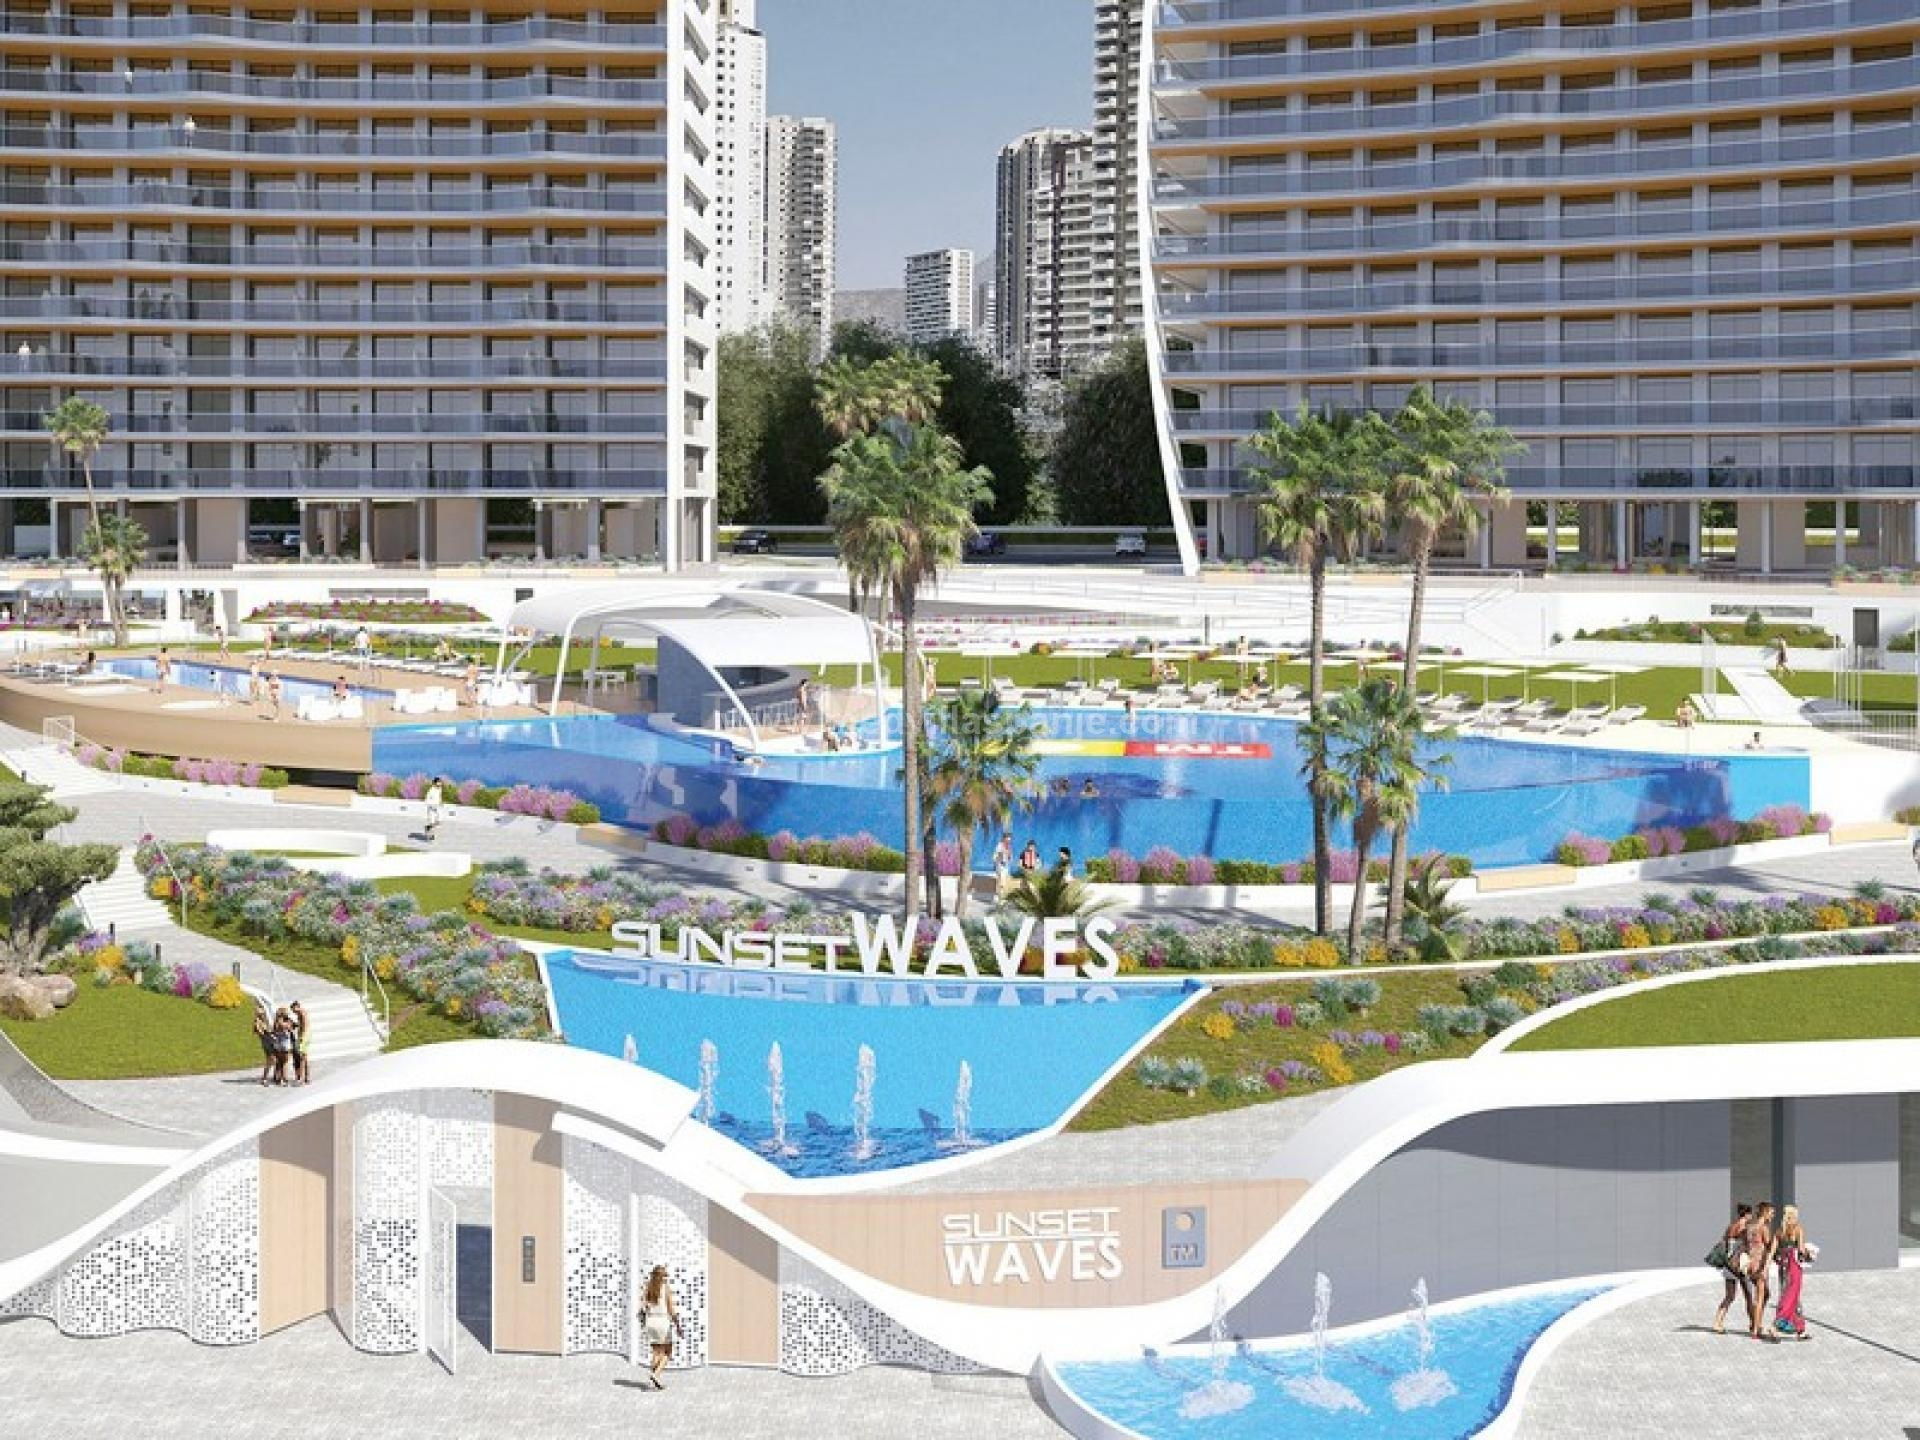 Sunset Waves - Appartement de 2 chambres à Benidorm in Medvilla Spanje